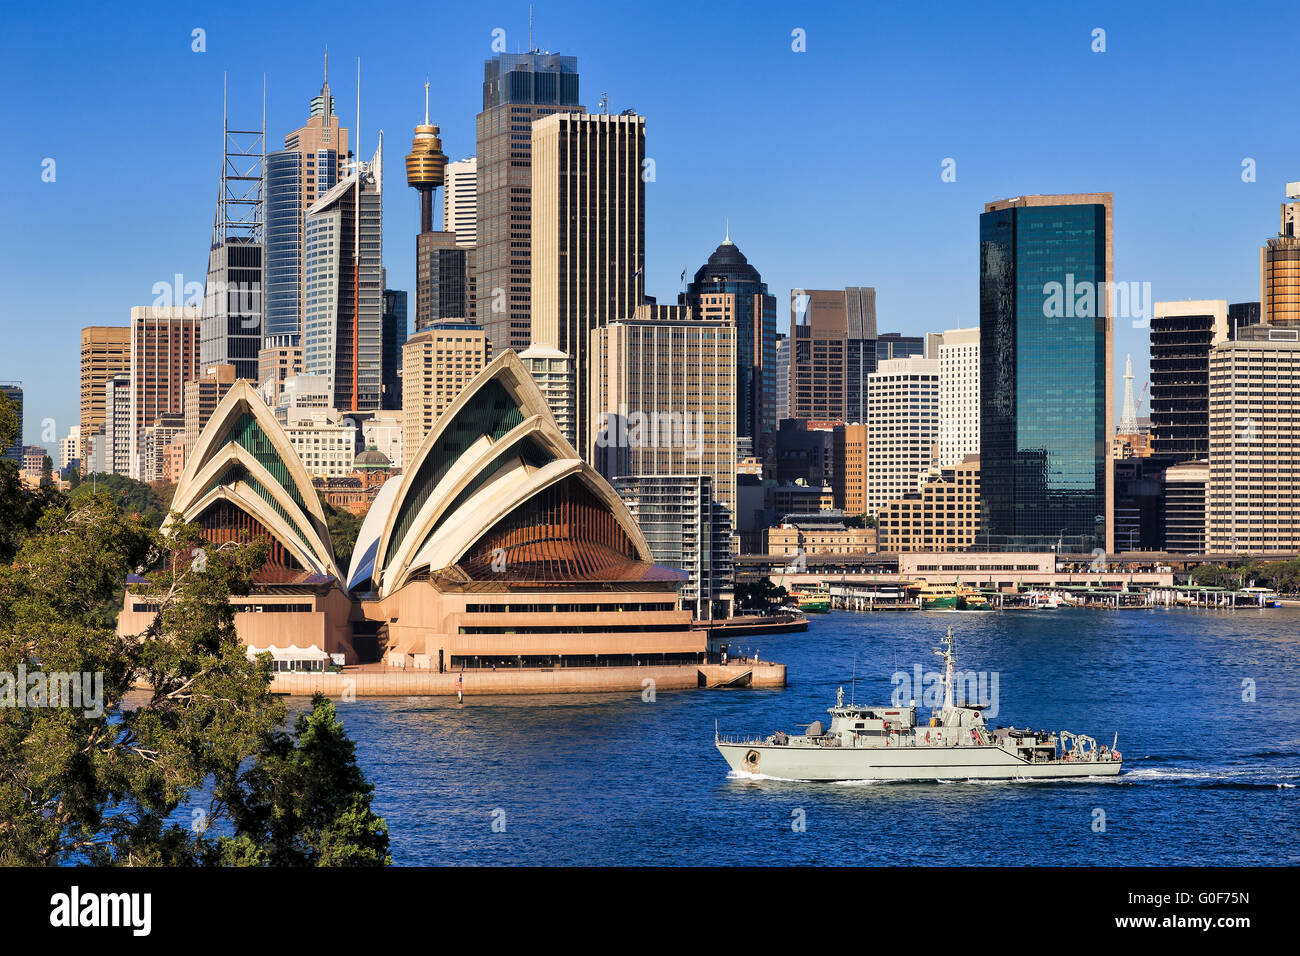 Sydney city landmarks of CBD as seen across harbour from Kirribilli. High rise towers of office and infrastructure - Stock Image